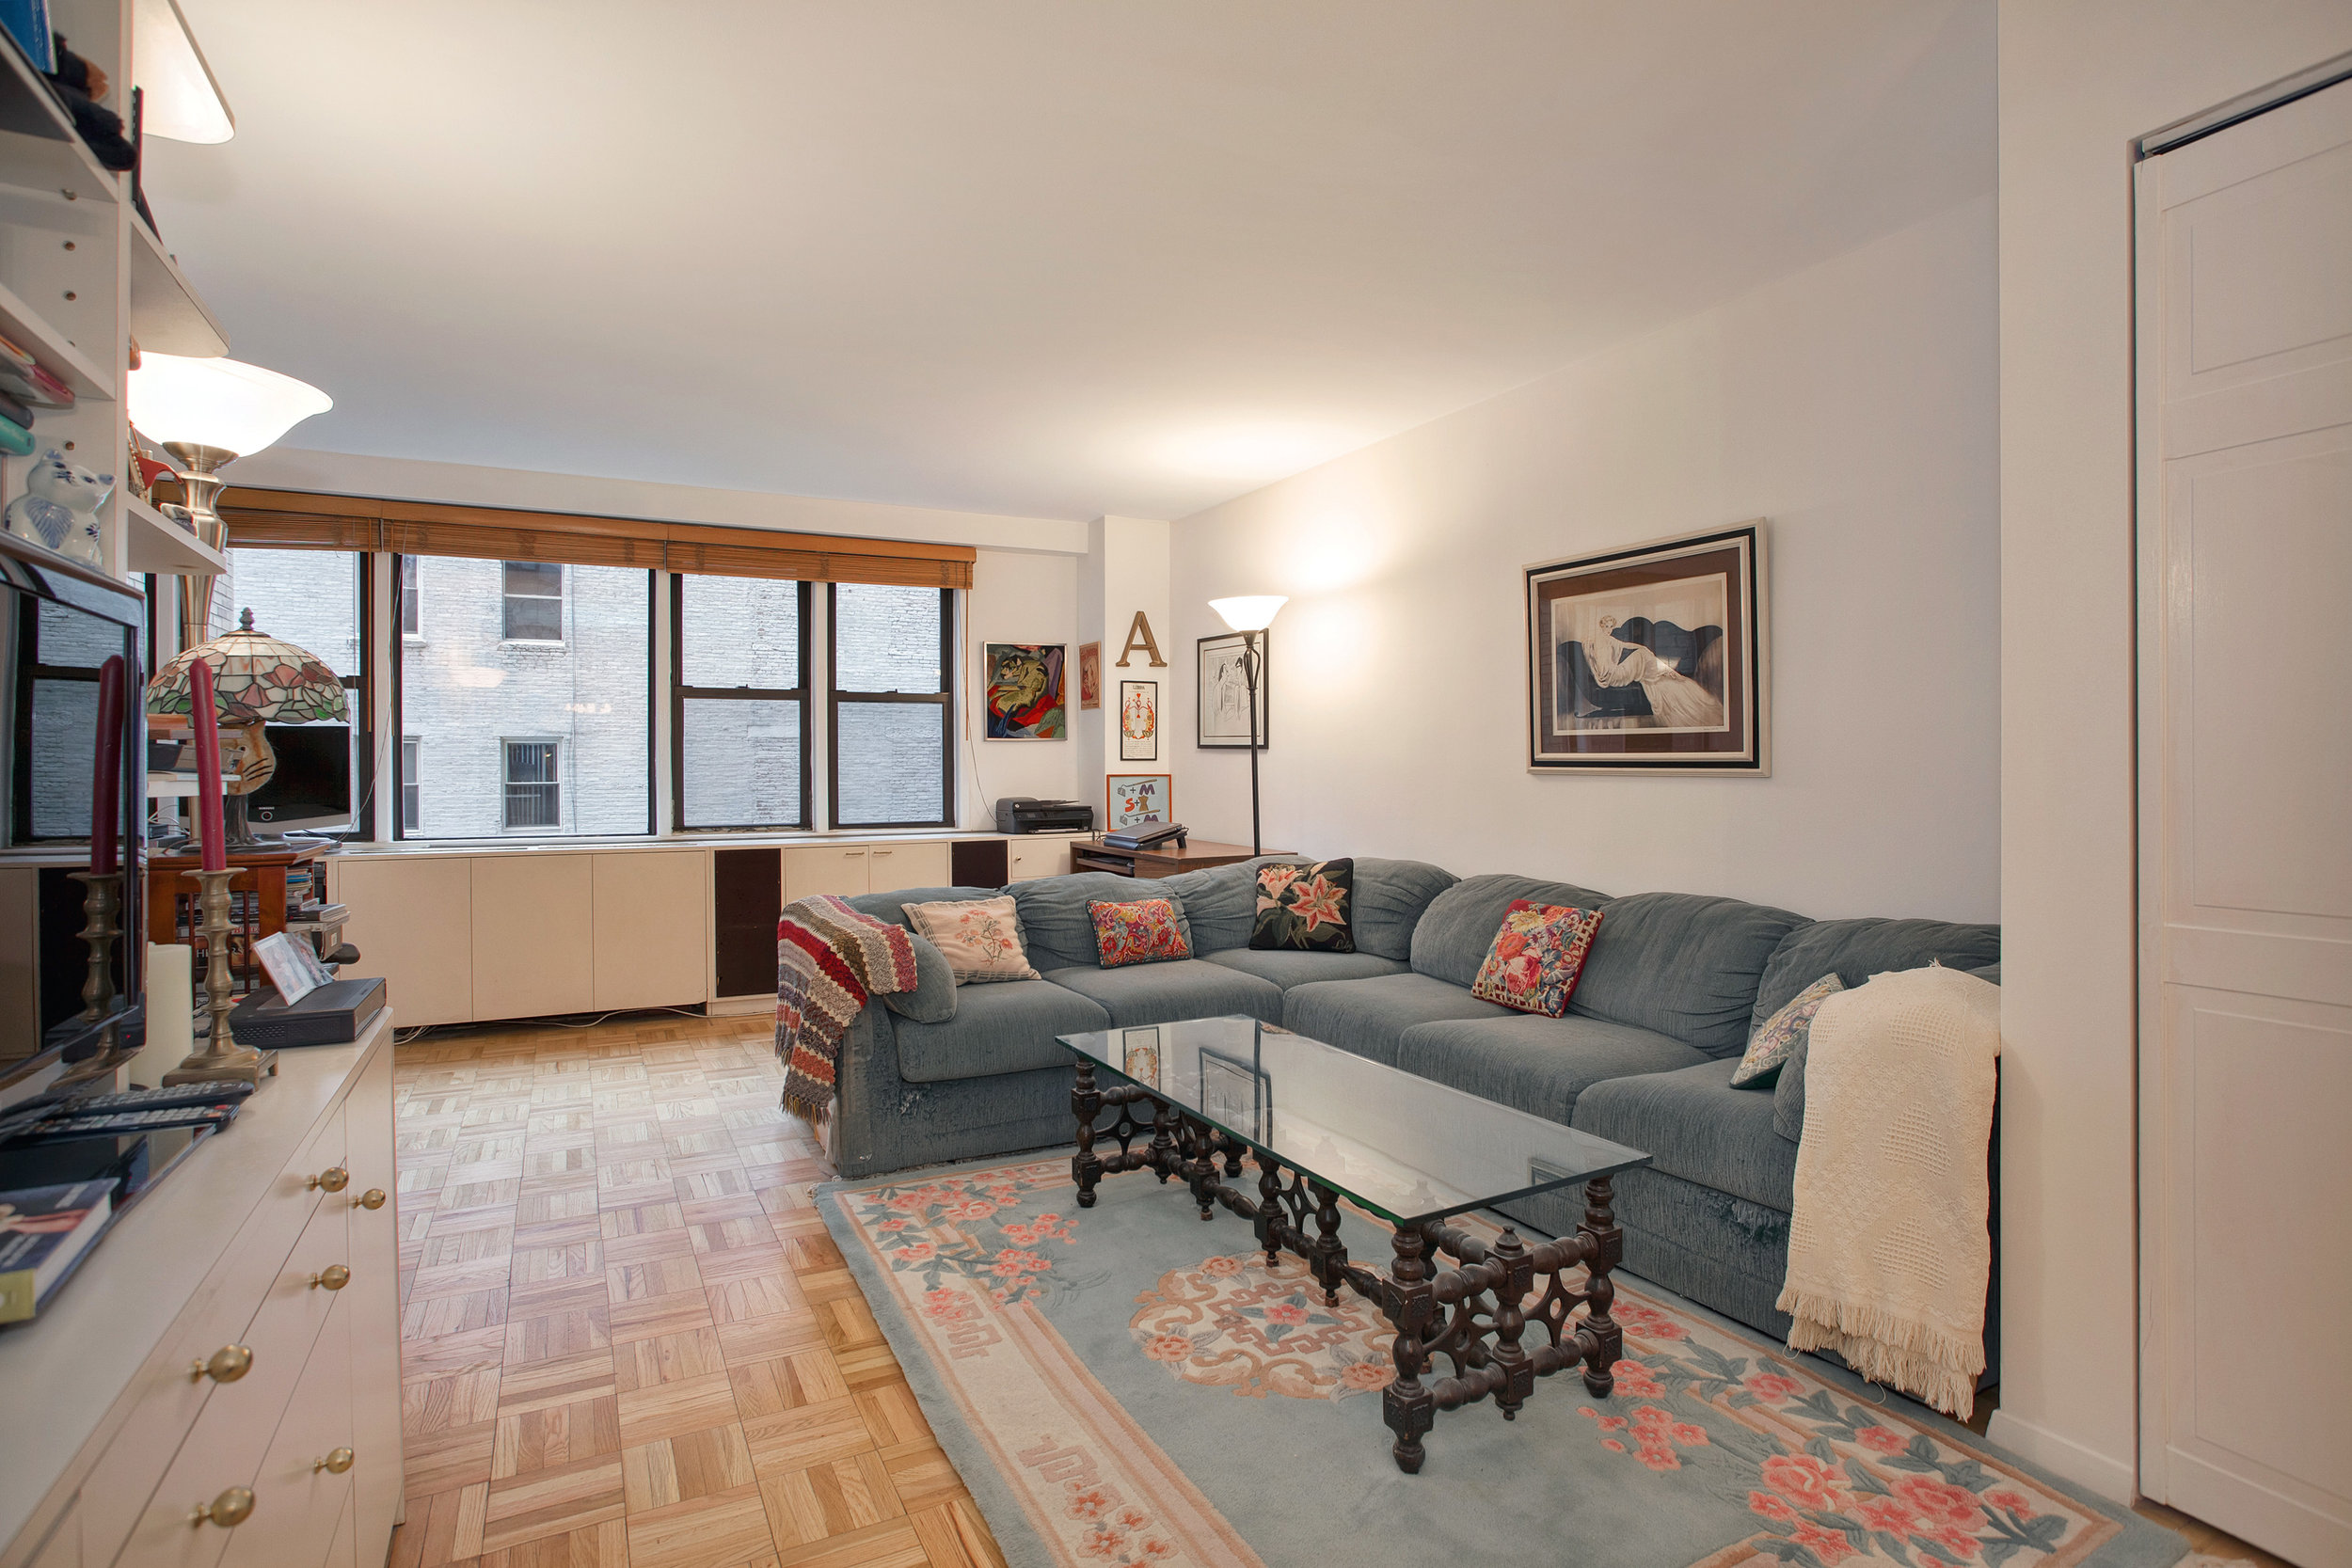 201 East 21st Street, Unit 4L - $550,000